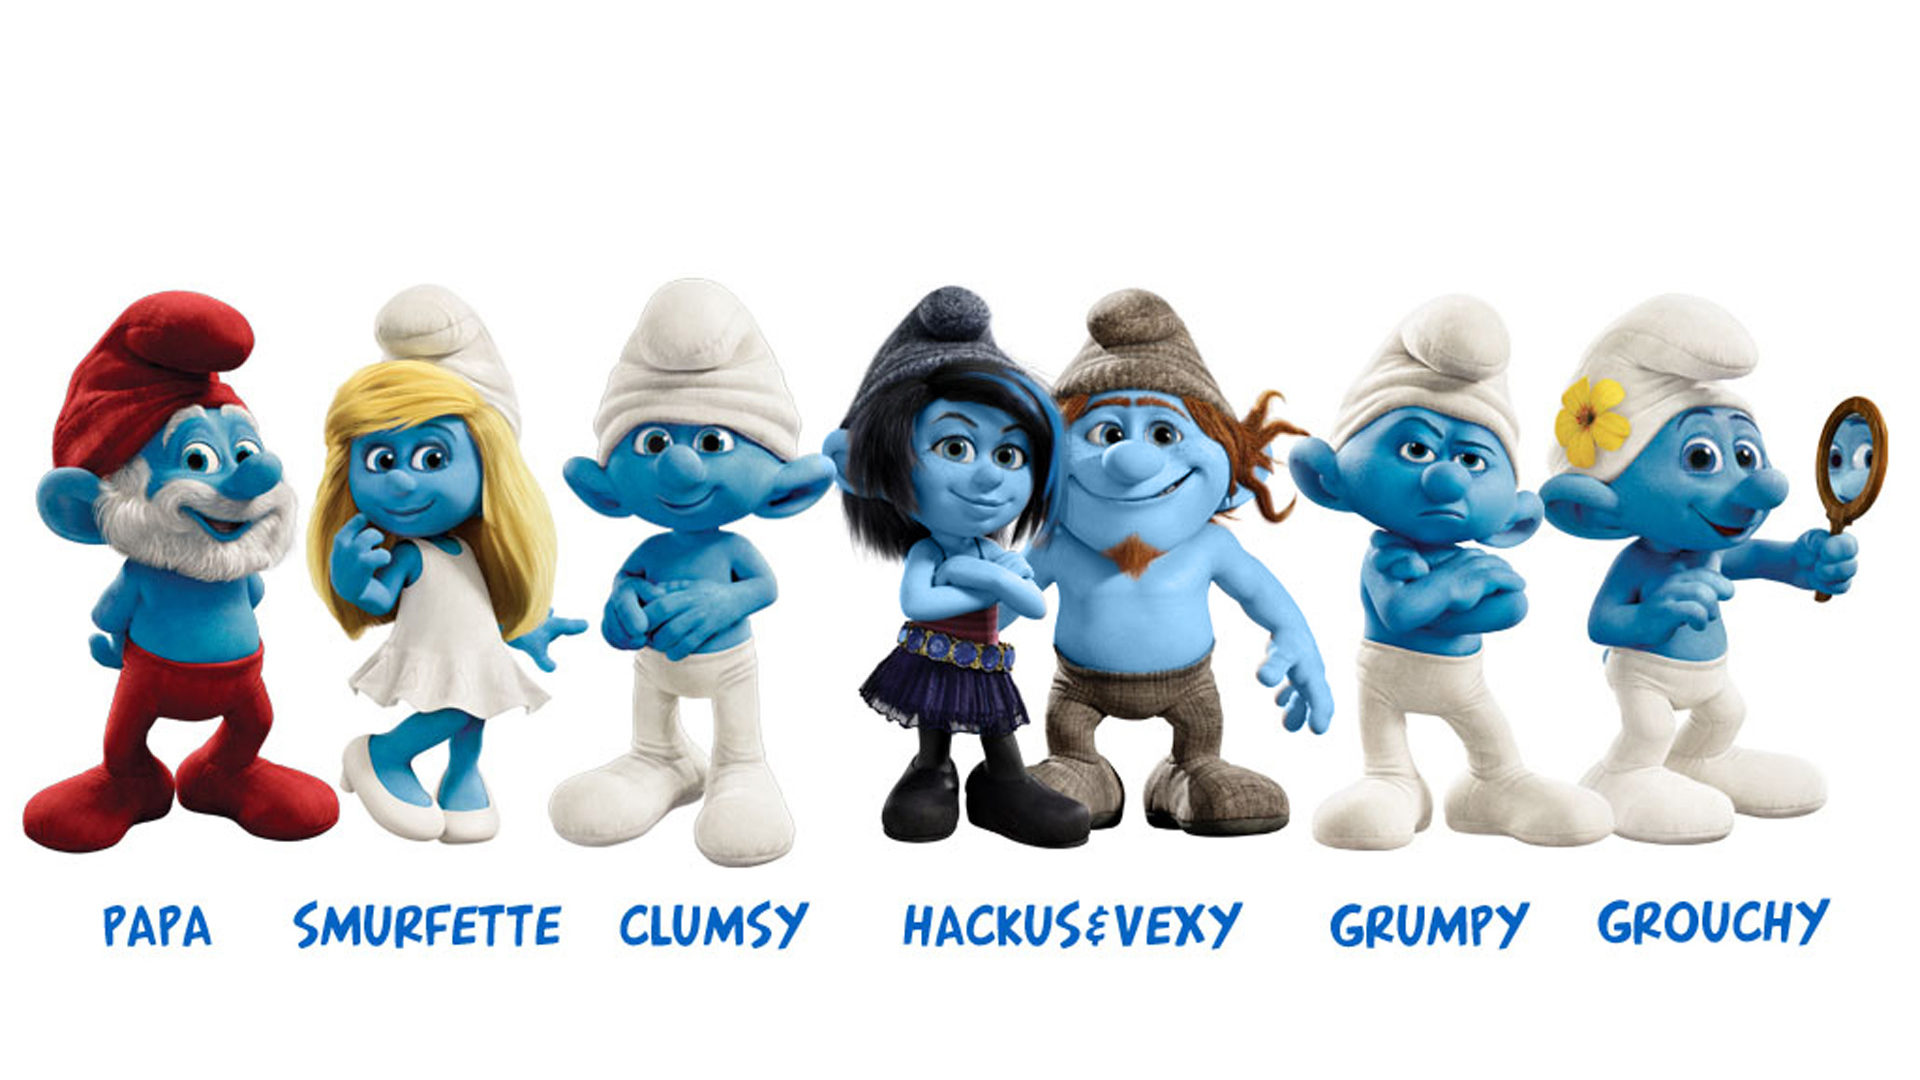 3d Animation Wallpaper For Android Mobile The Smurfs 2 Character Cartoons Desktop Background Hd